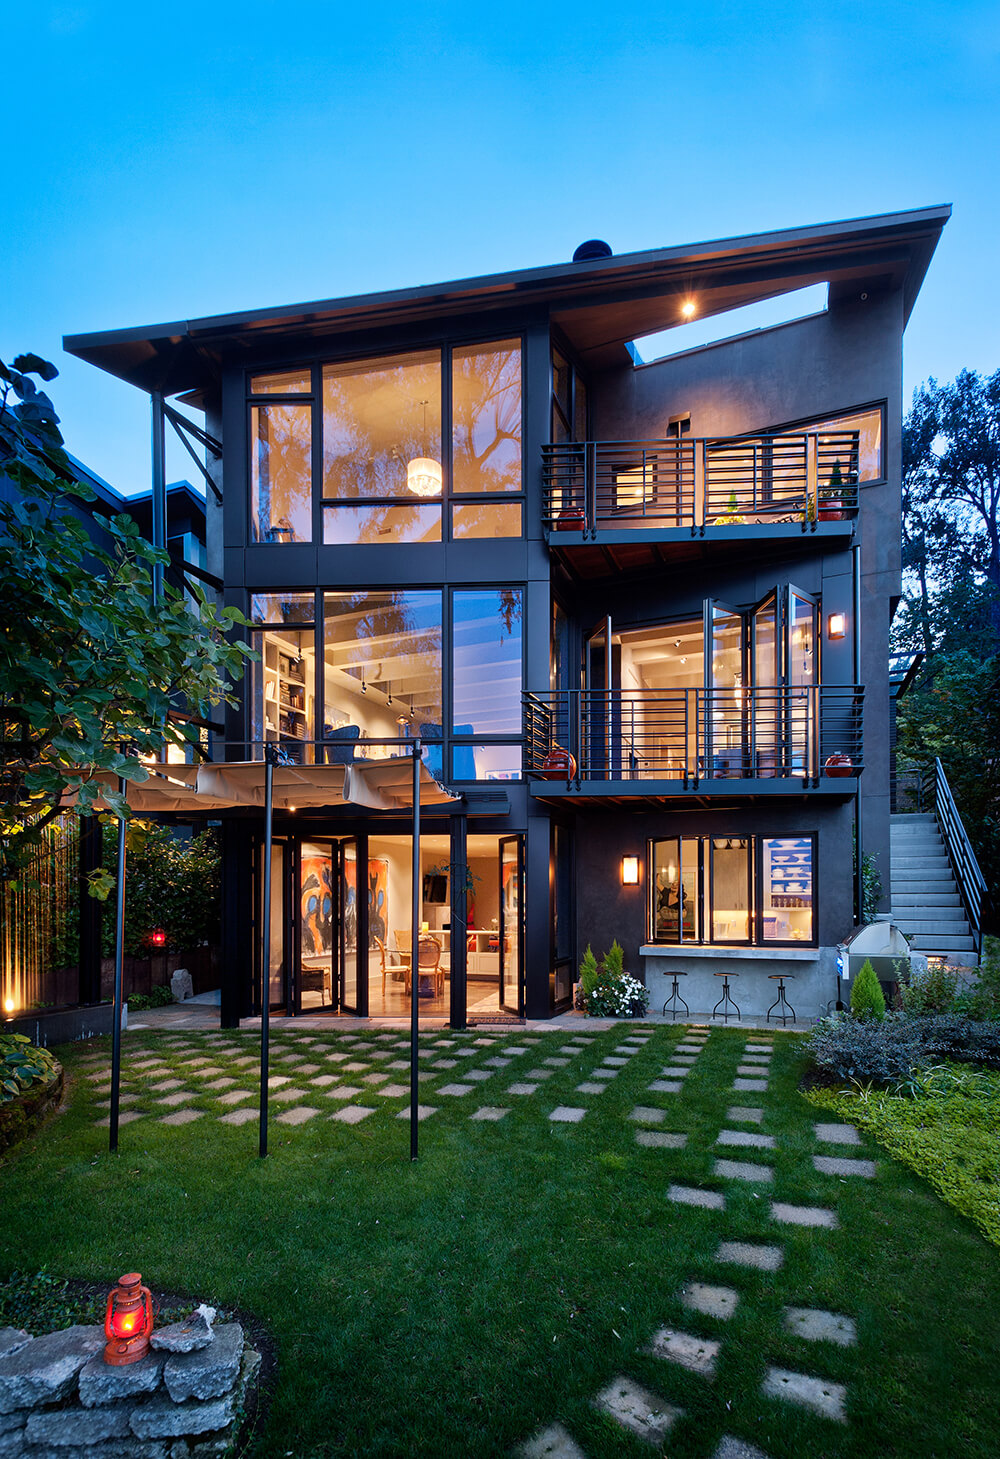 Viewed from the richly landscaped back yard, we see the towering structure covered in glass on this side. The warm interplay of light and fresh air helps connect the interior to the environment.